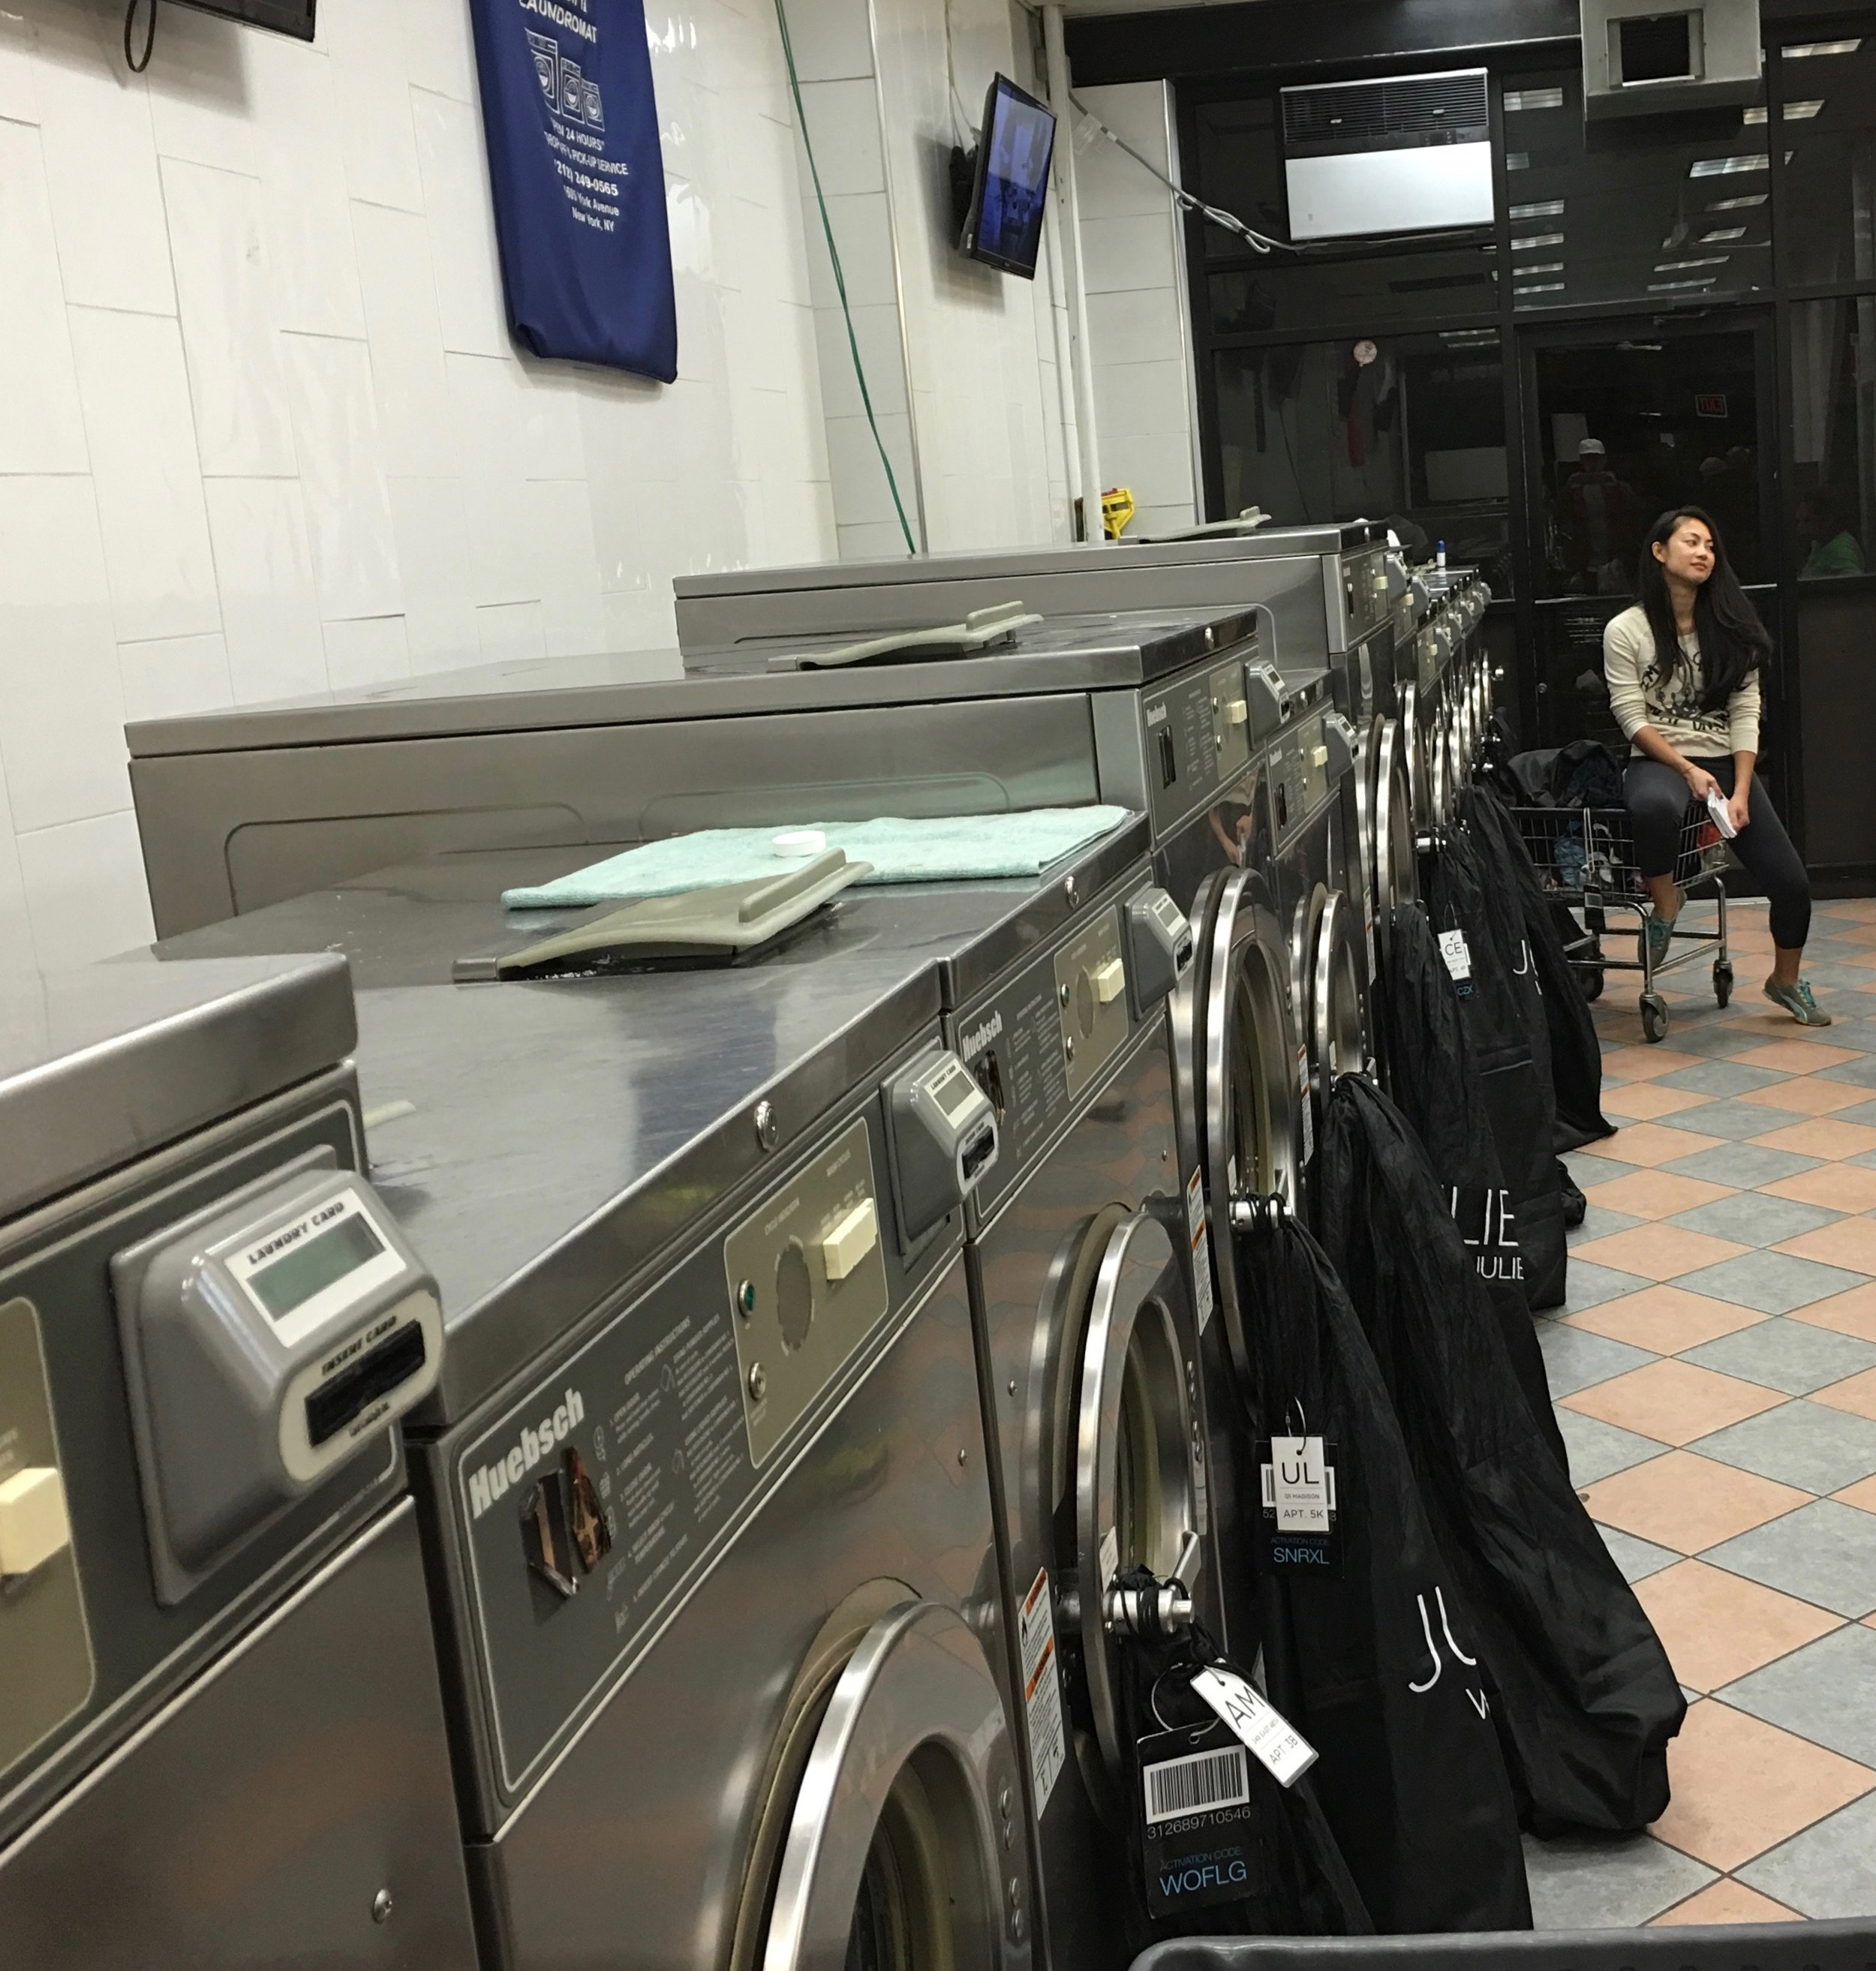 I worked at night. Every single night. I worked in the laundromat 7 days straight for the first two years.